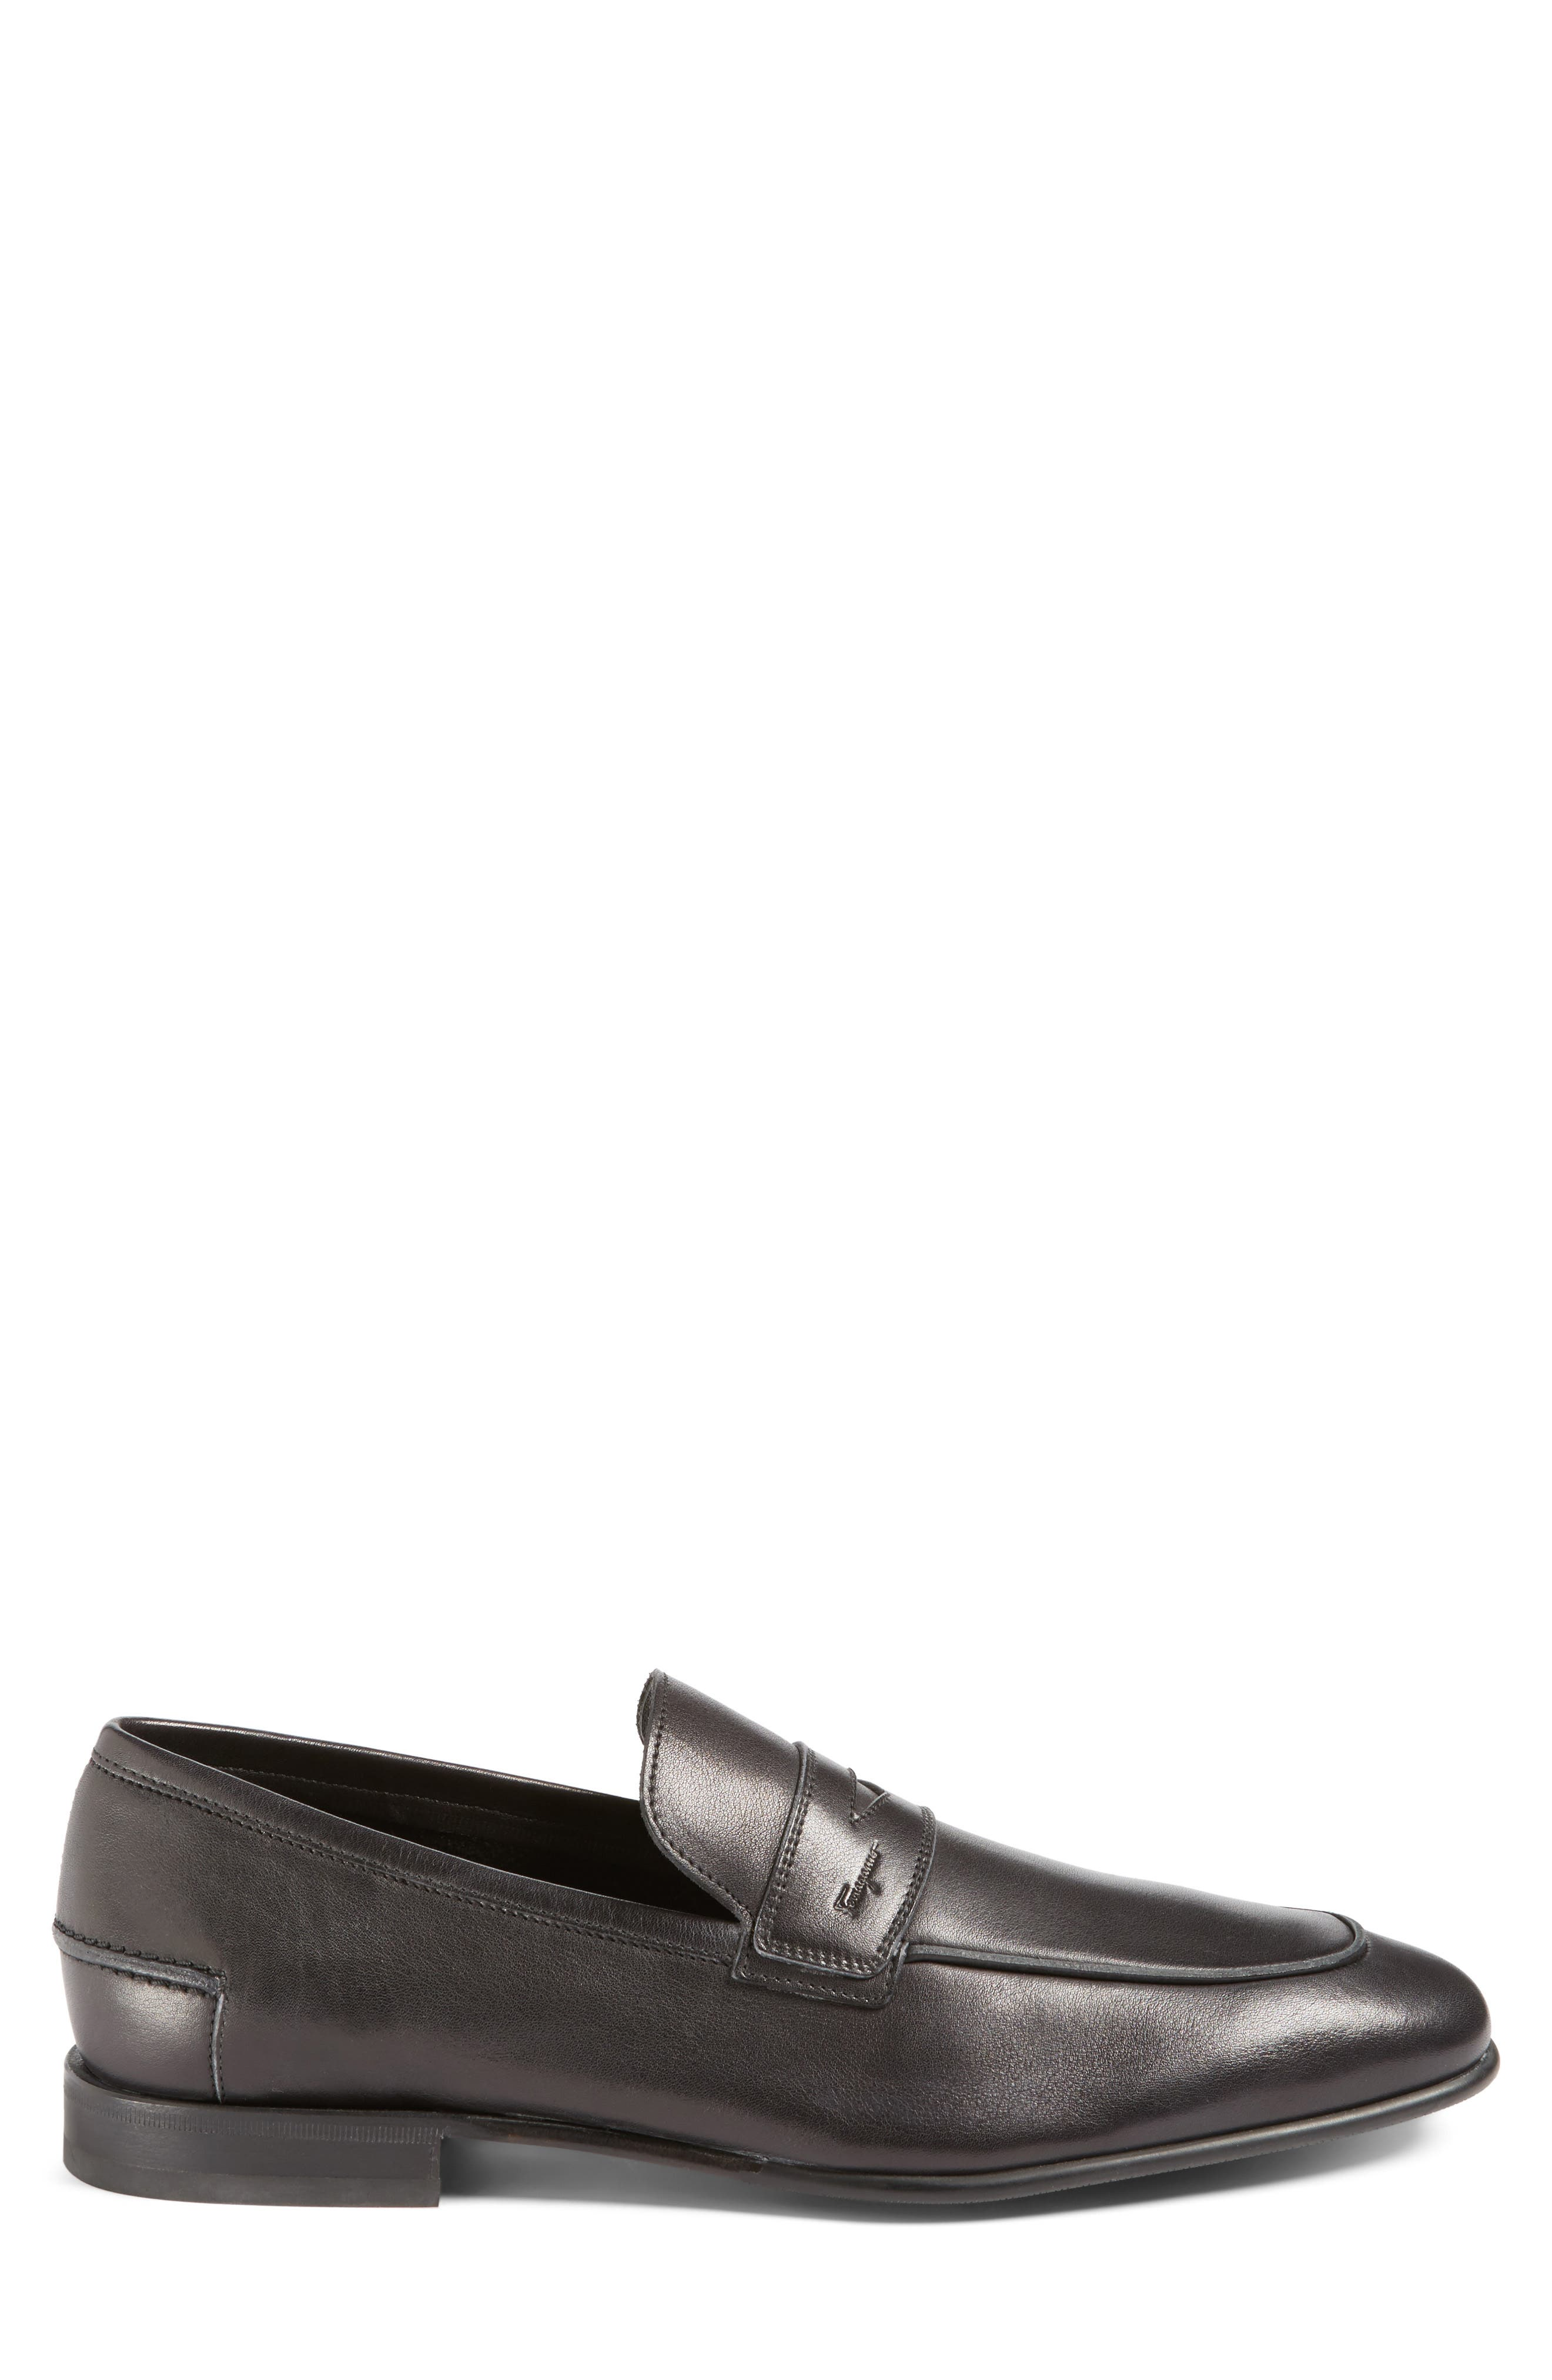 Duchamp Penny Loafer,                             Alternate thumbnail 3, color,                             Nero Leather